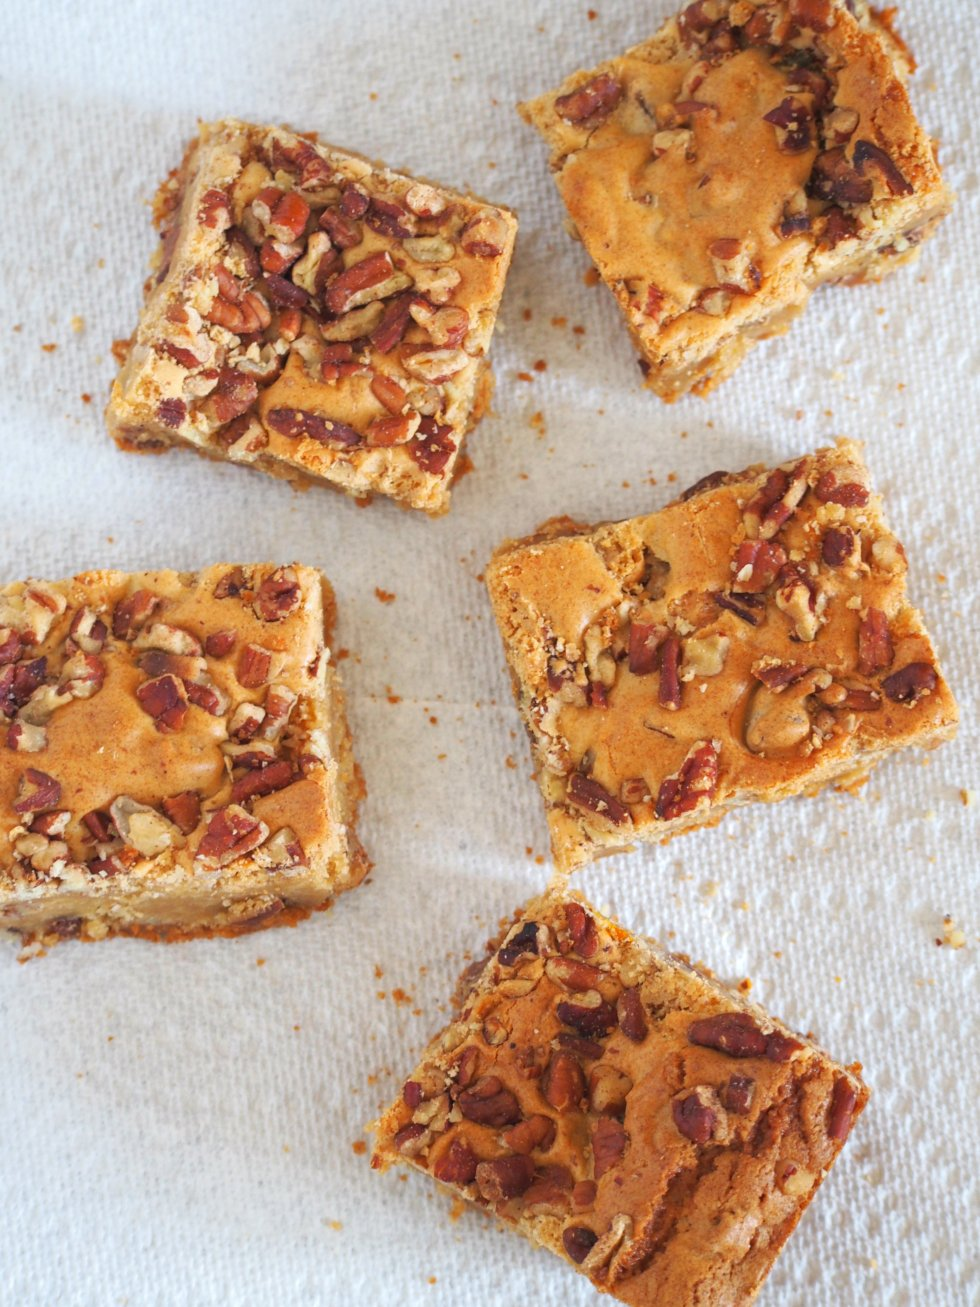 Enjoy these chewy butterscotch bars studded with crunchy pecans and delightful chocolate chips. Best things to munch anytime, anywhere.